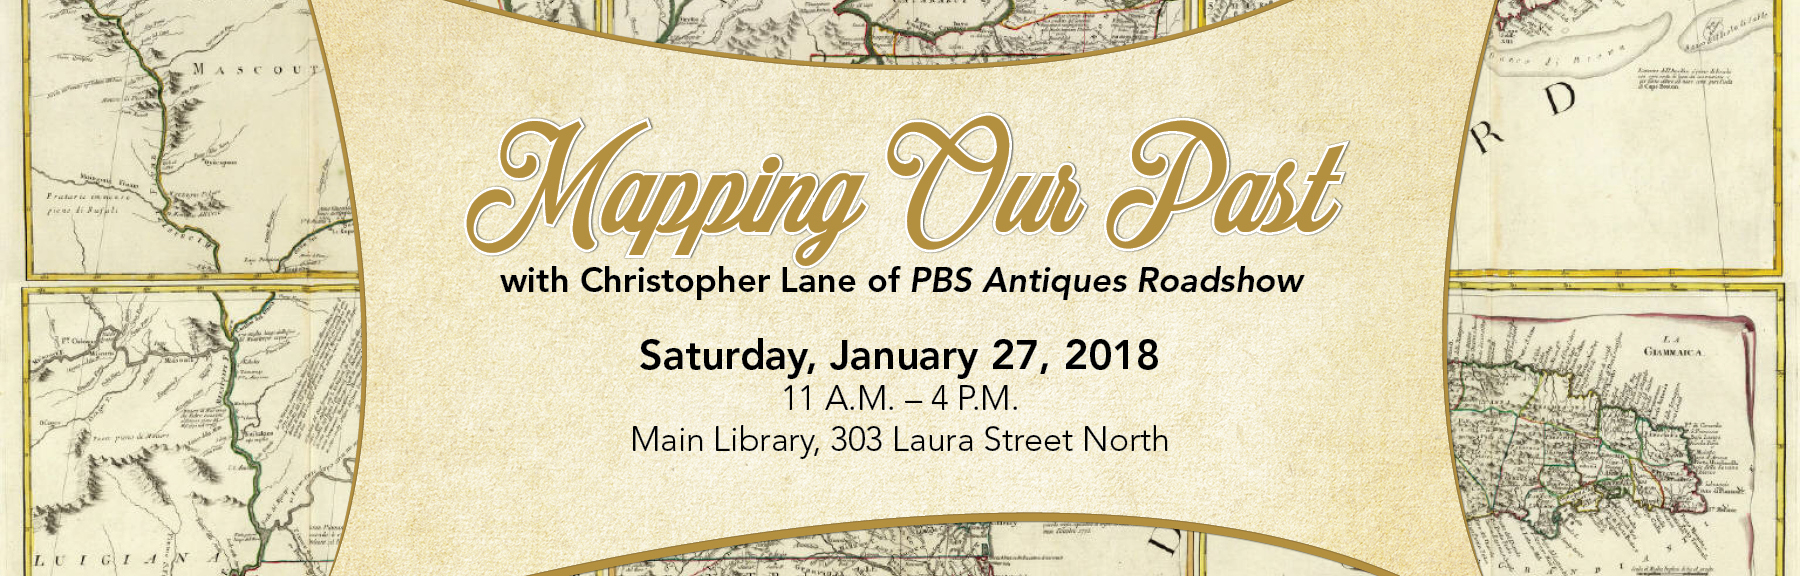 JAN 2018 e-news banner_Mapping Our Past